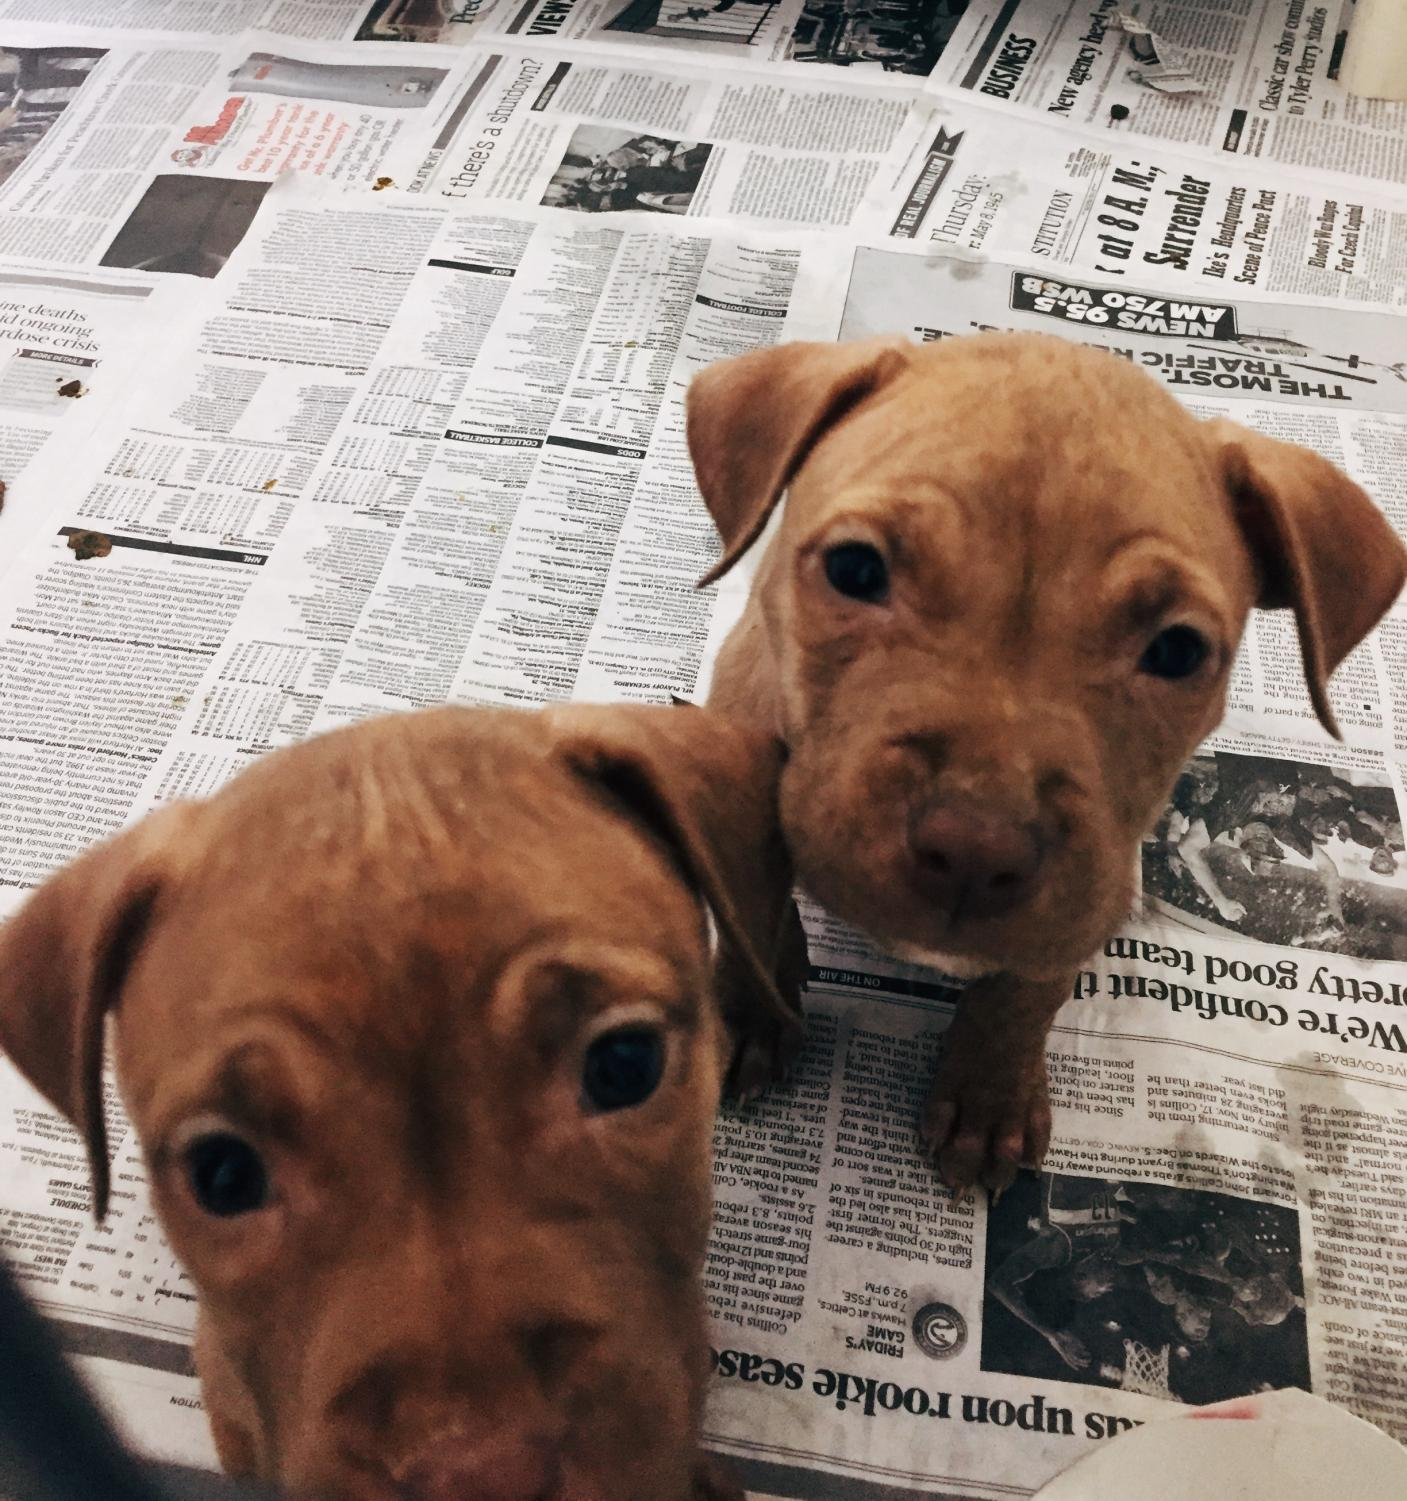 Petland, one of the pet stores in the Kennesaw/Acworth area, faced yet another scandal for poor treatment of the puppies and animals in their care.